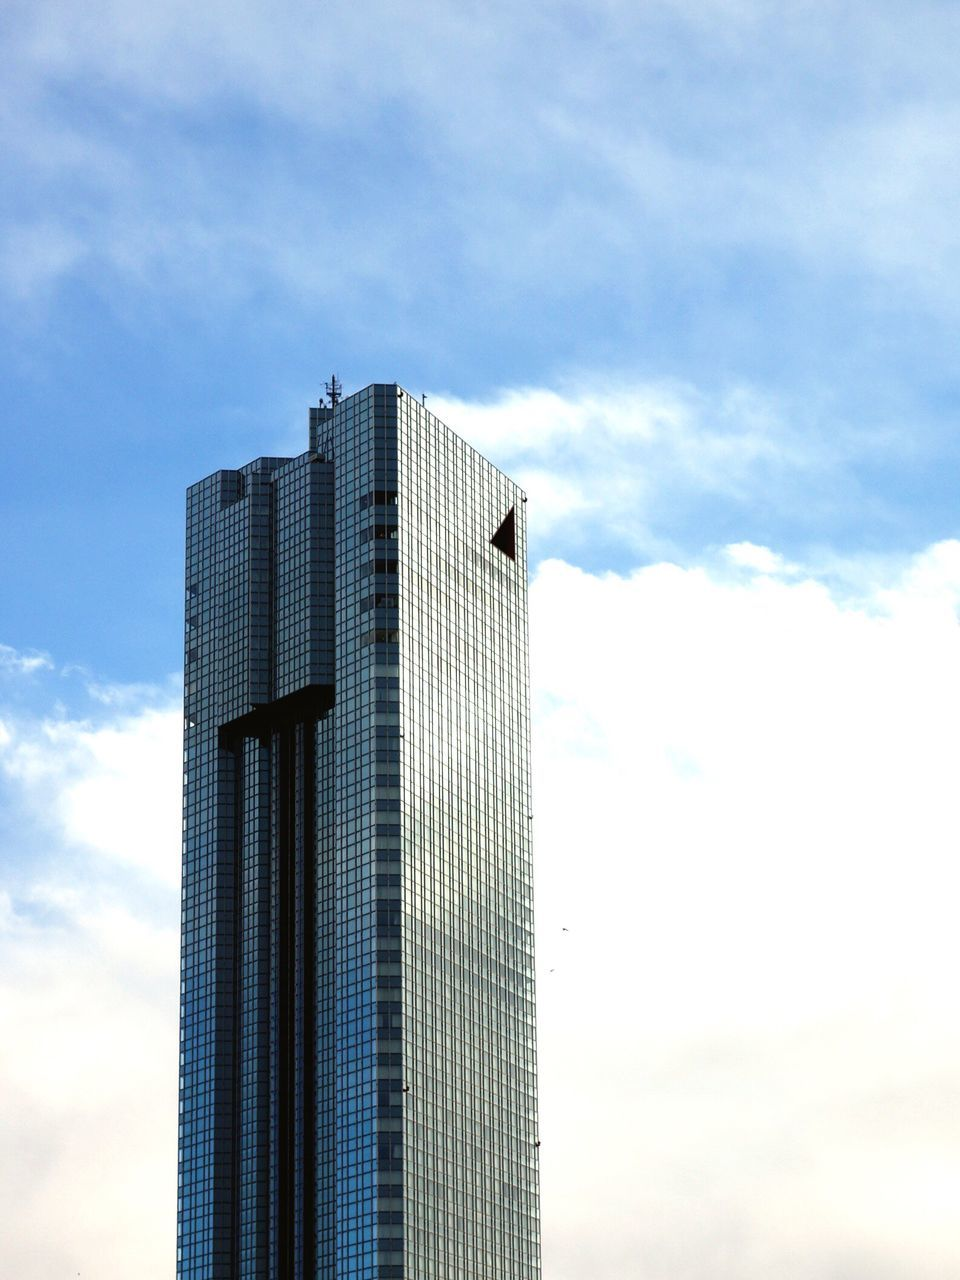 sky, architecture, low angle view, built structure, cloud - sky, modern, skyscraper, building exterior, day, no people, outdoors, growth, city